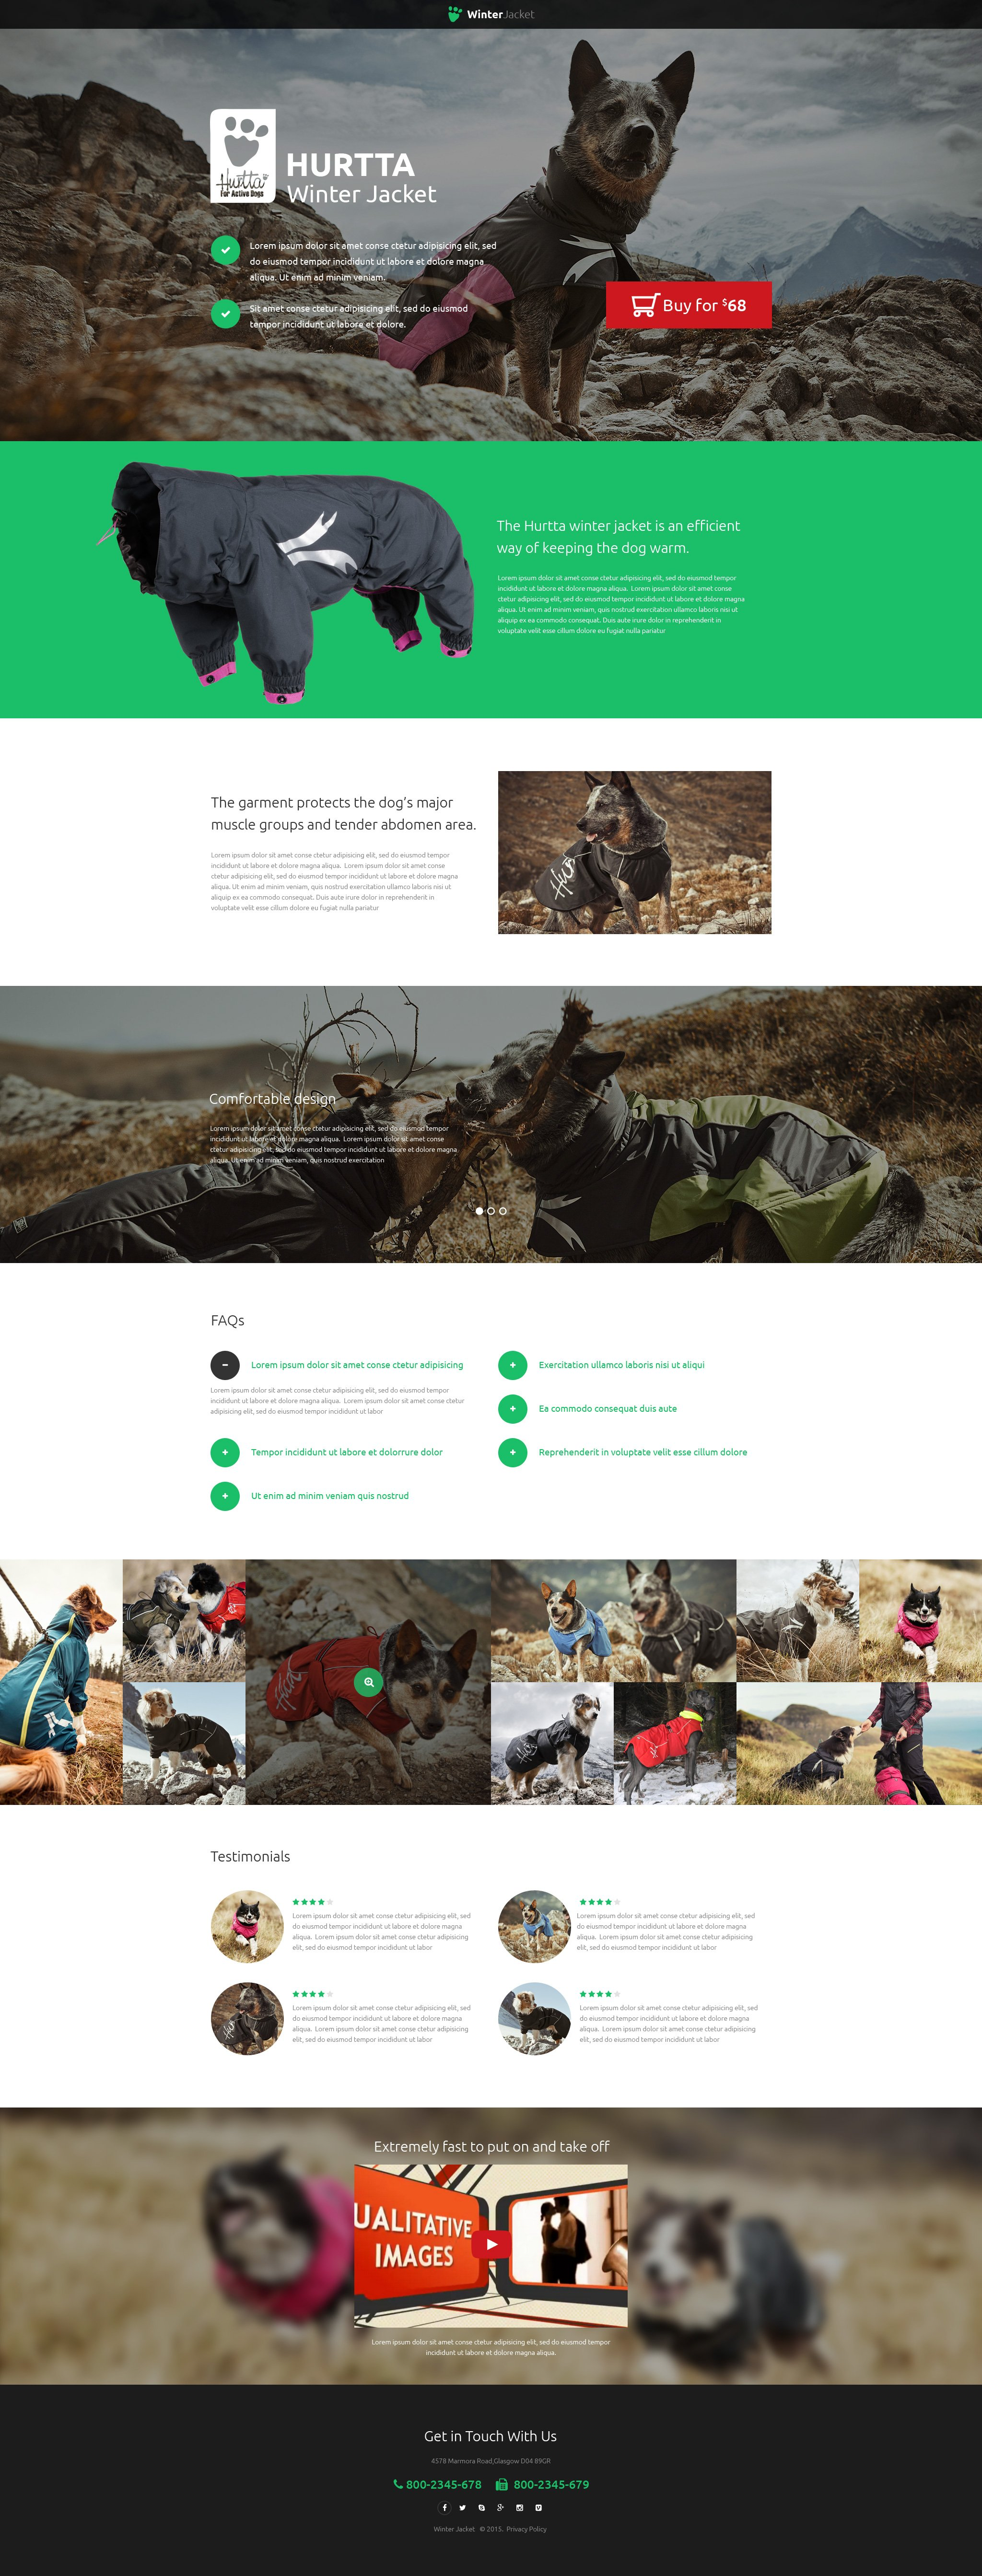 Animals & Pets Landing Page Template - screenshot